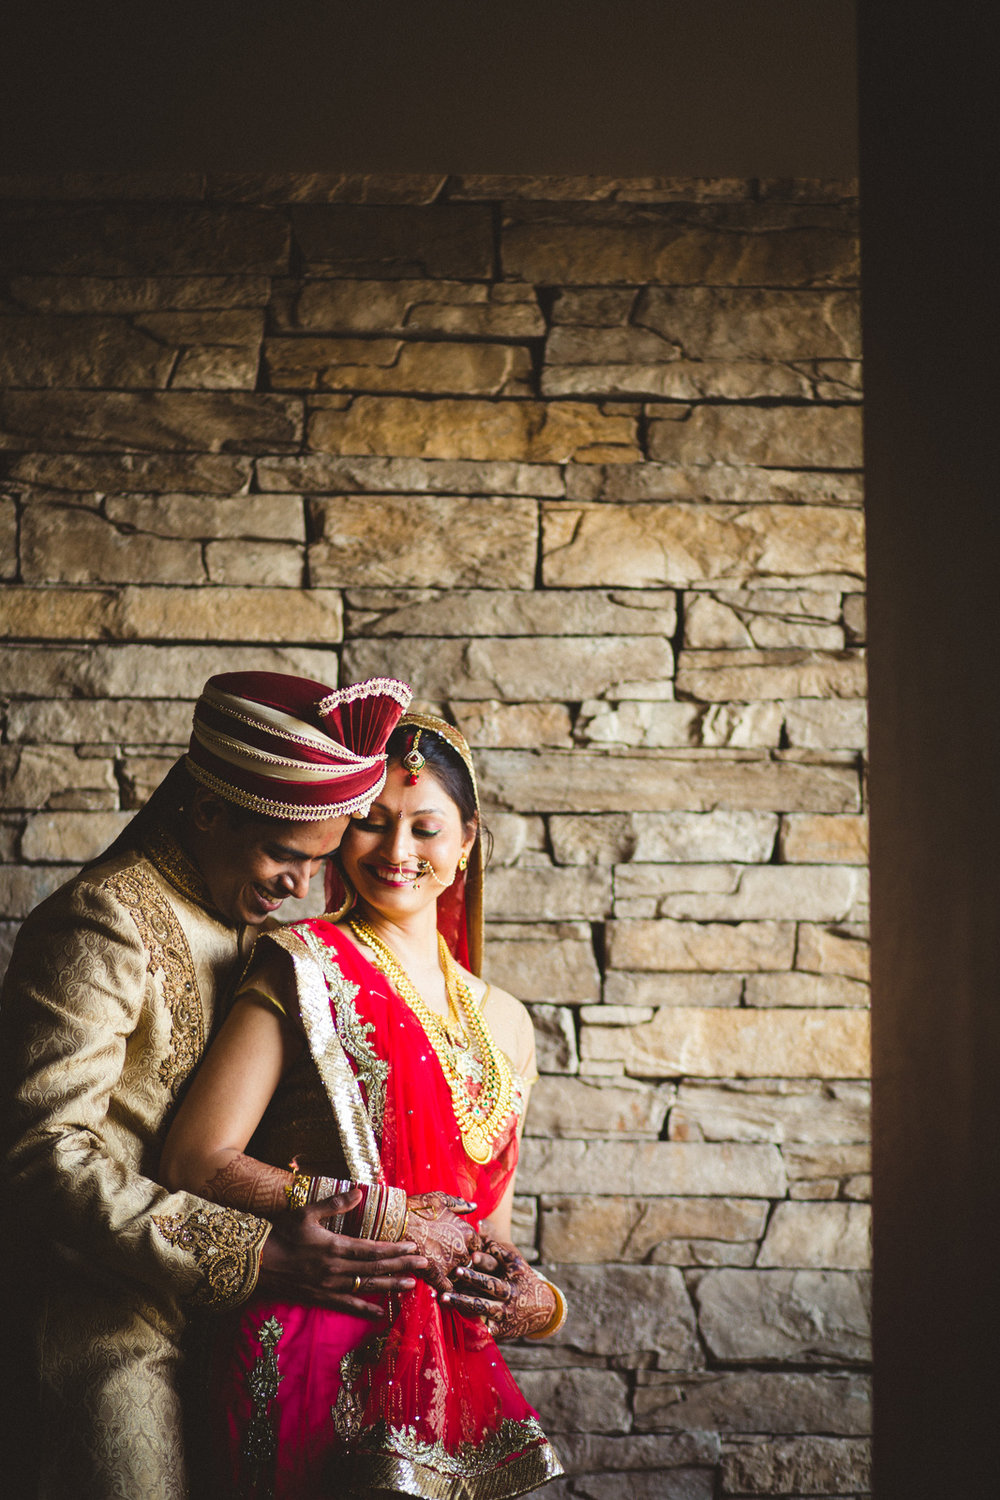 mumbai-candid-wedding-photographer-into-candid-av-45.jpg